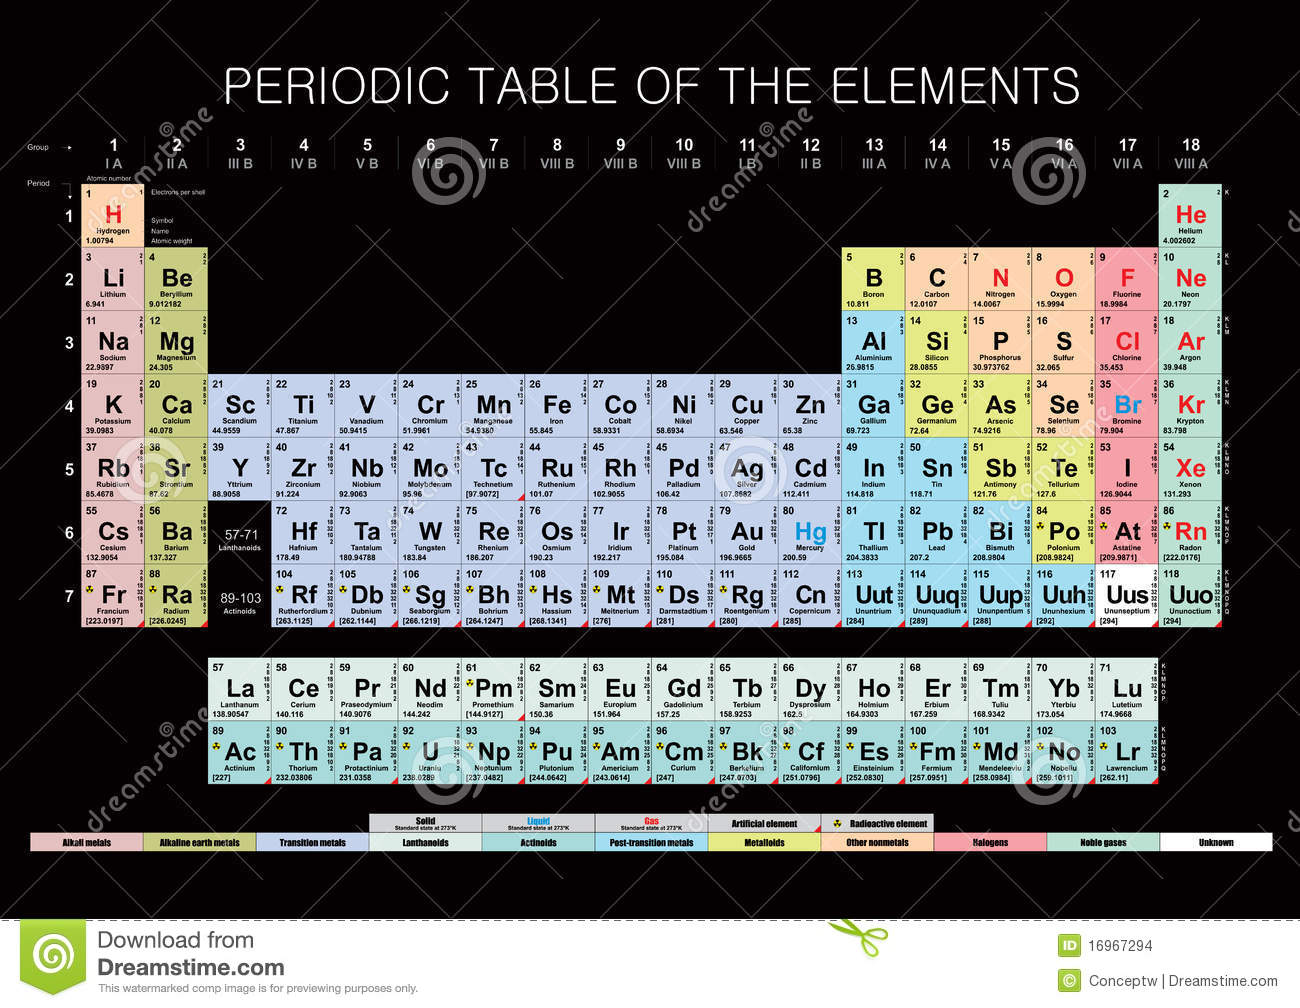 Periodic table metals nonmetals metalloids halogens noble gases table nonmetals metals periodic noble gases metalloids halogens 16967294 stock the of image periodic images gamestrikefo Images